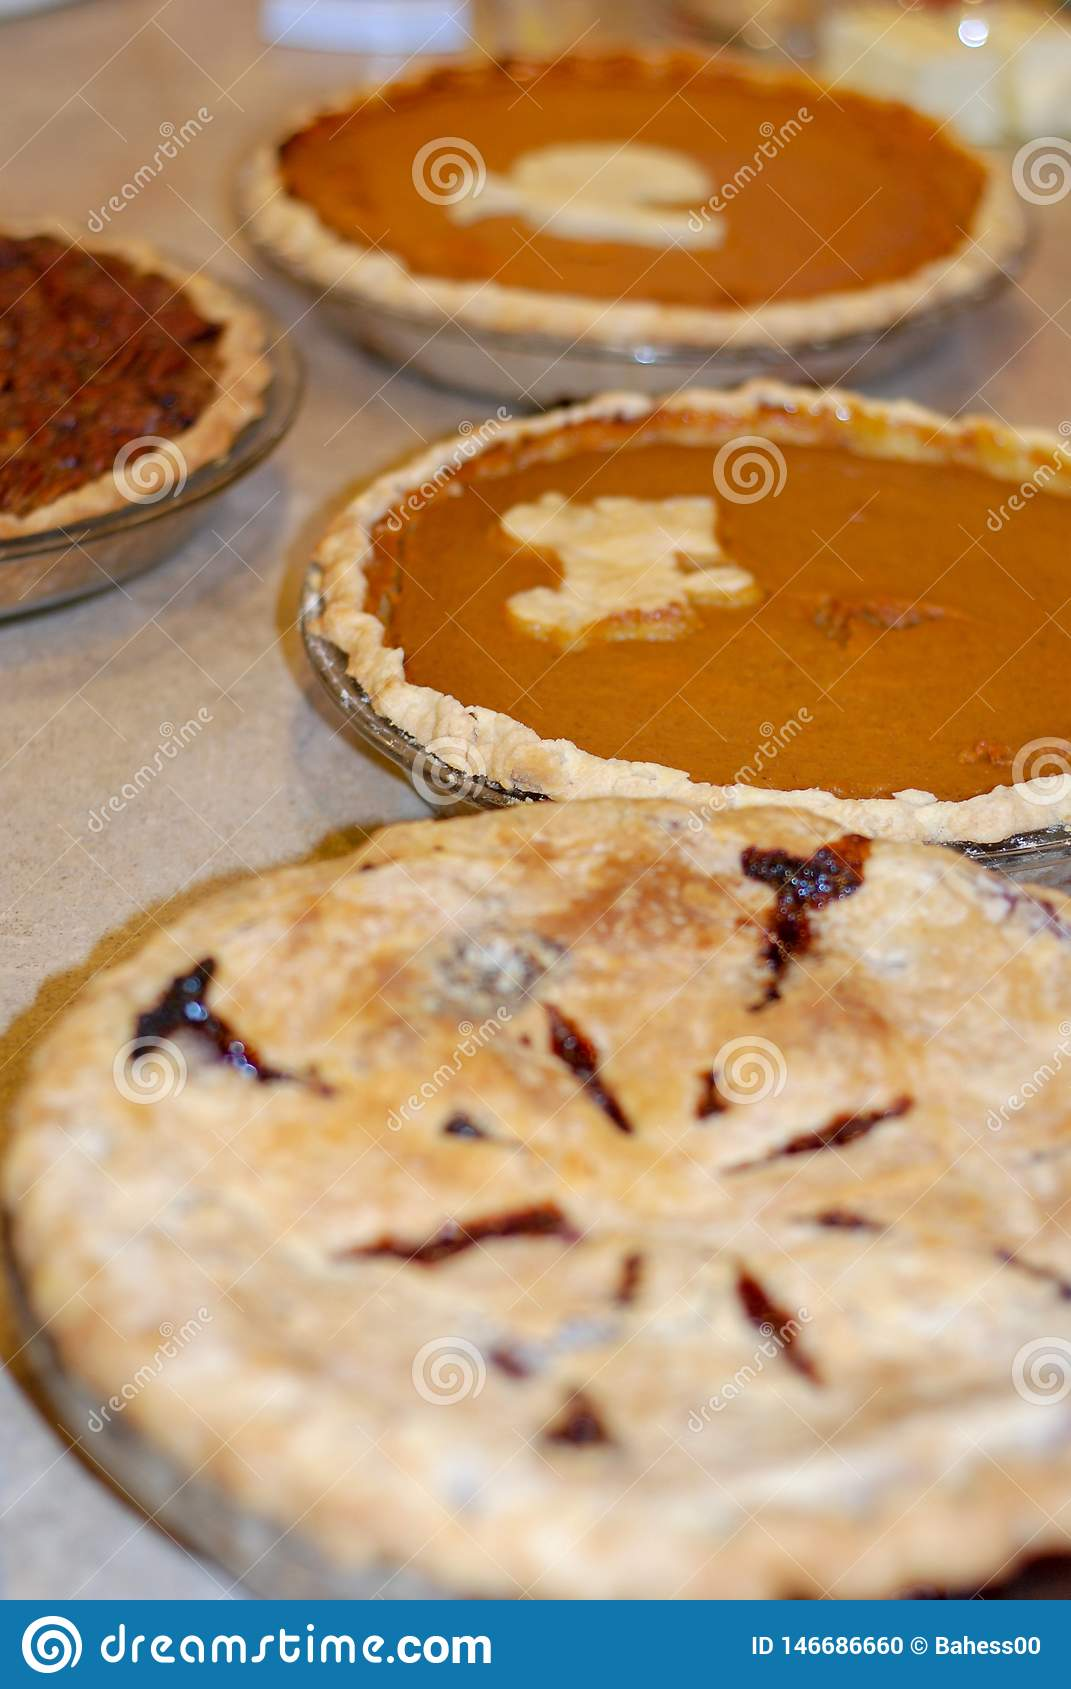 Pumpkin, pecan, and berry pie at Thanksgiving